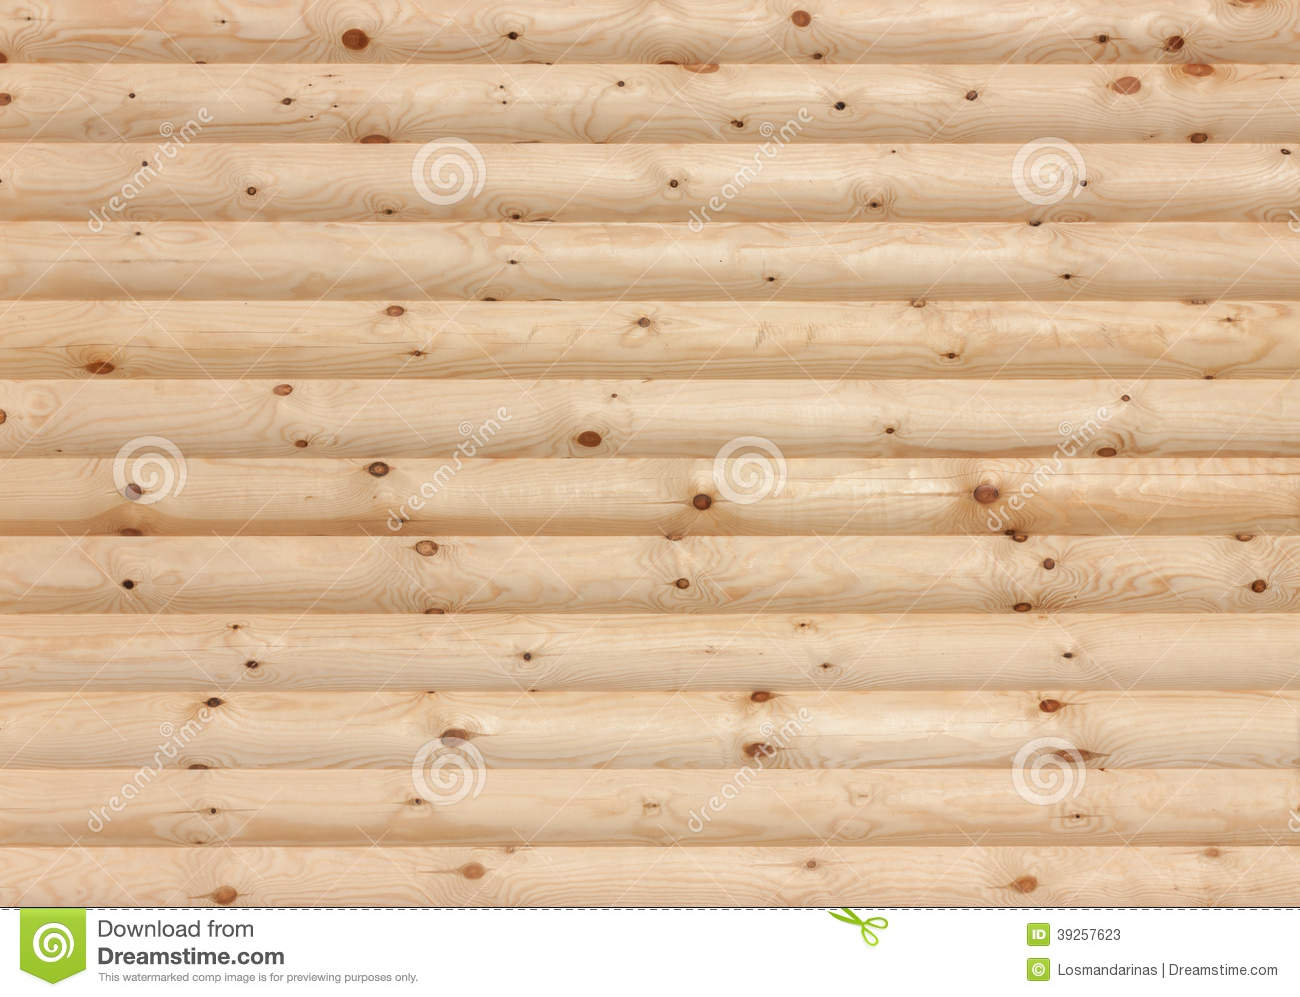 Log Wallpaper With The Texture Of Logs ~ Wooden logs wall background texture stock photo image